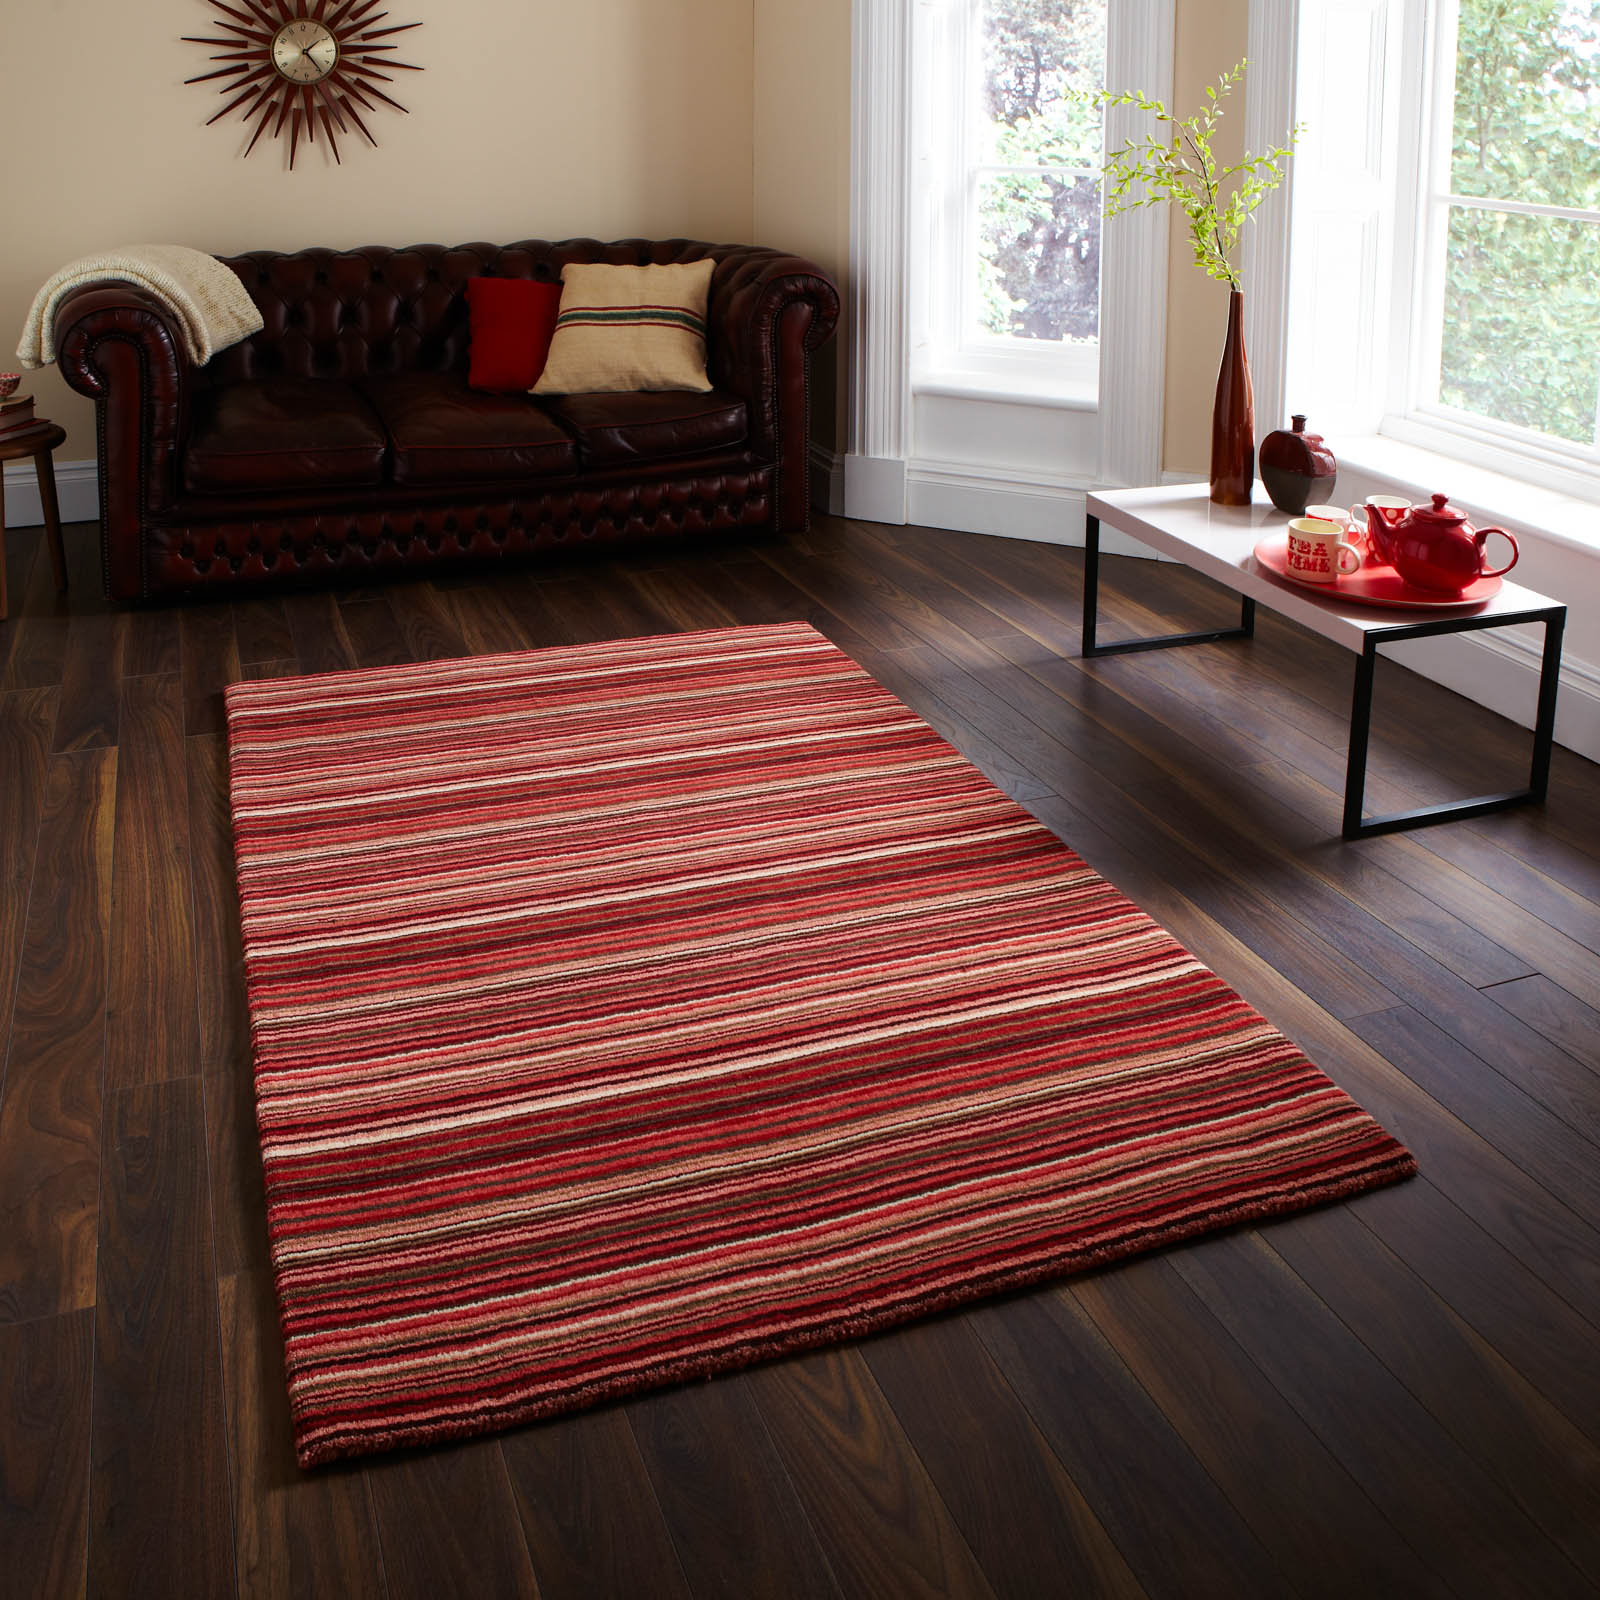 Oxford Rugs OX 10 Stripes in Red Beige